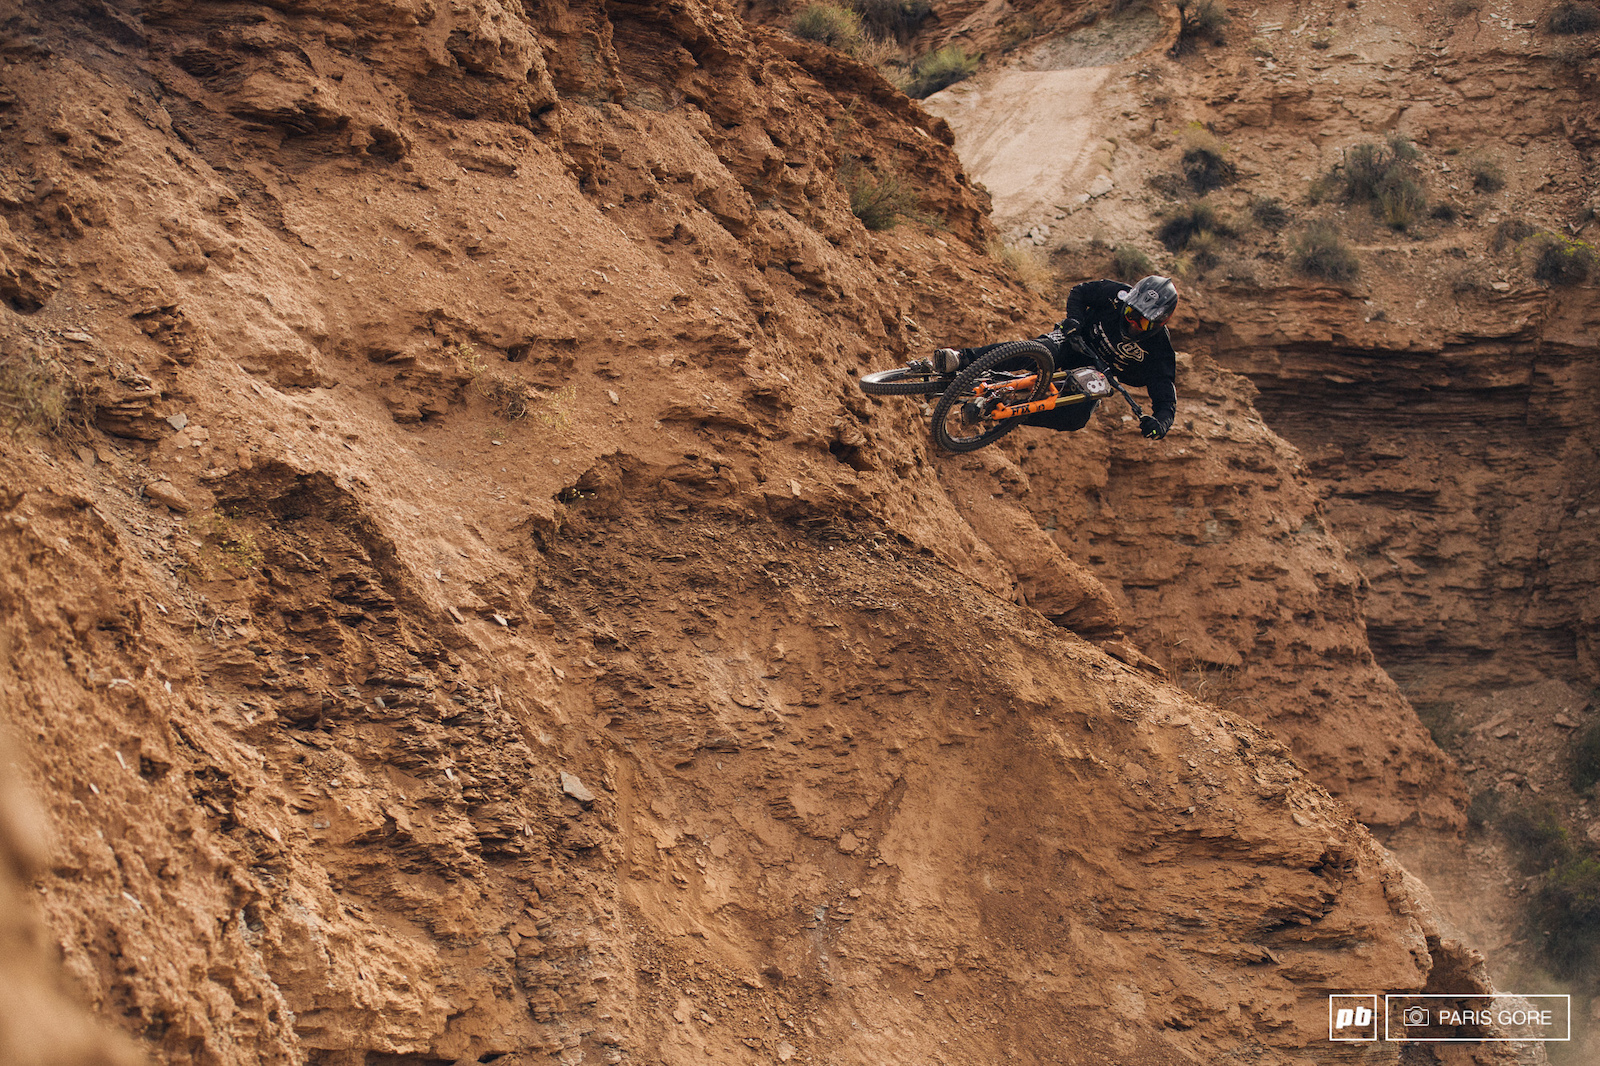 Tom Van Steenbergen blasted into this wall yesterday and had a great run today but not enough to earn a top spot.